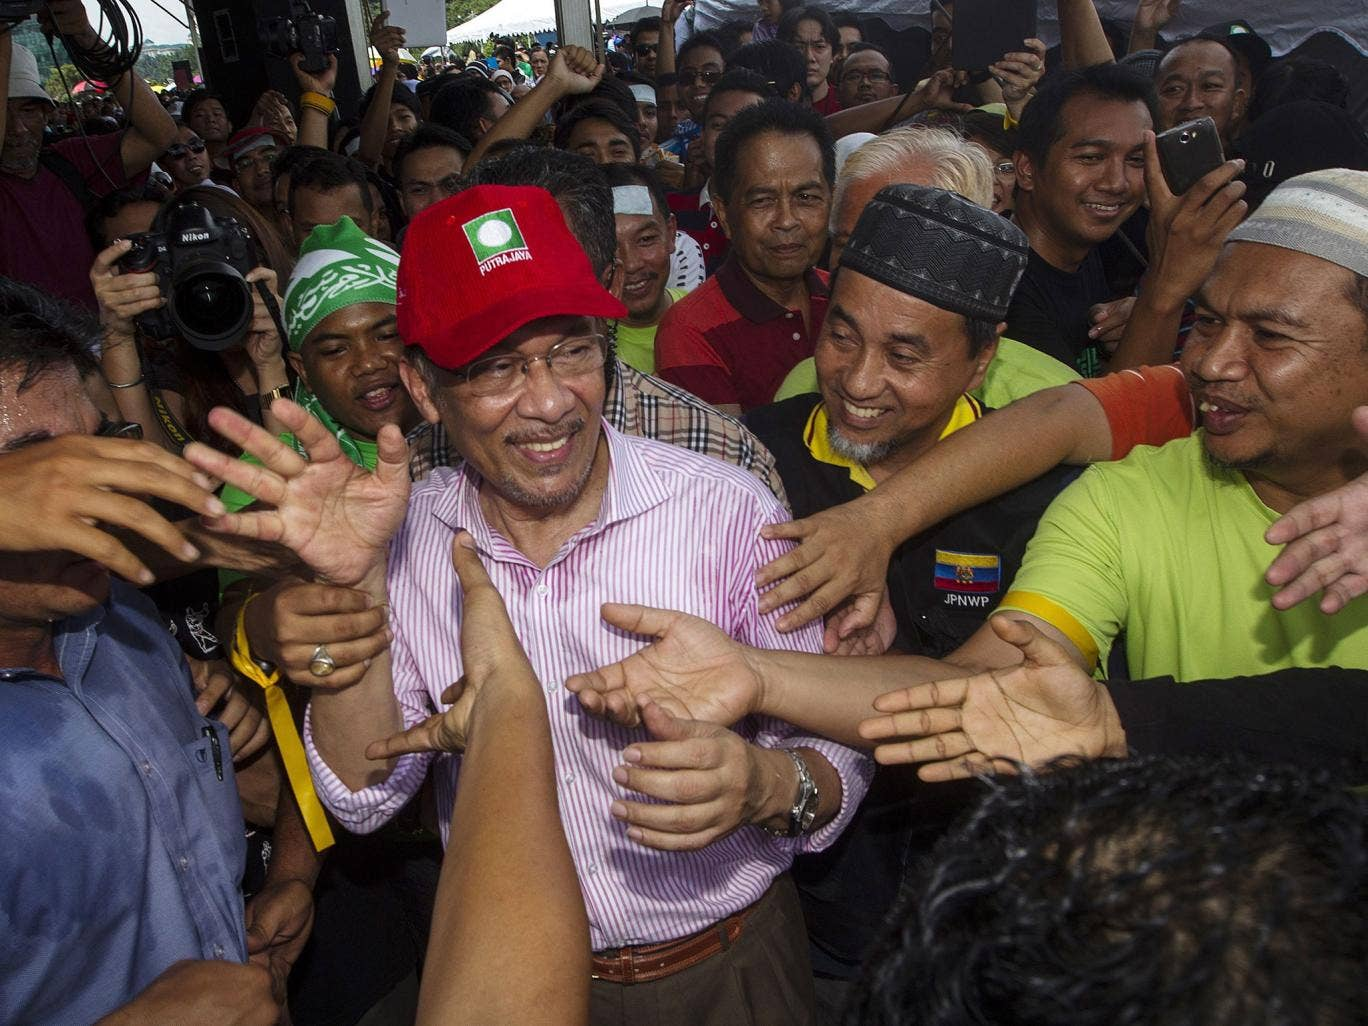 Opposition leader Anwar Ibrahim claims at least 40,000 people had been flown in for the election